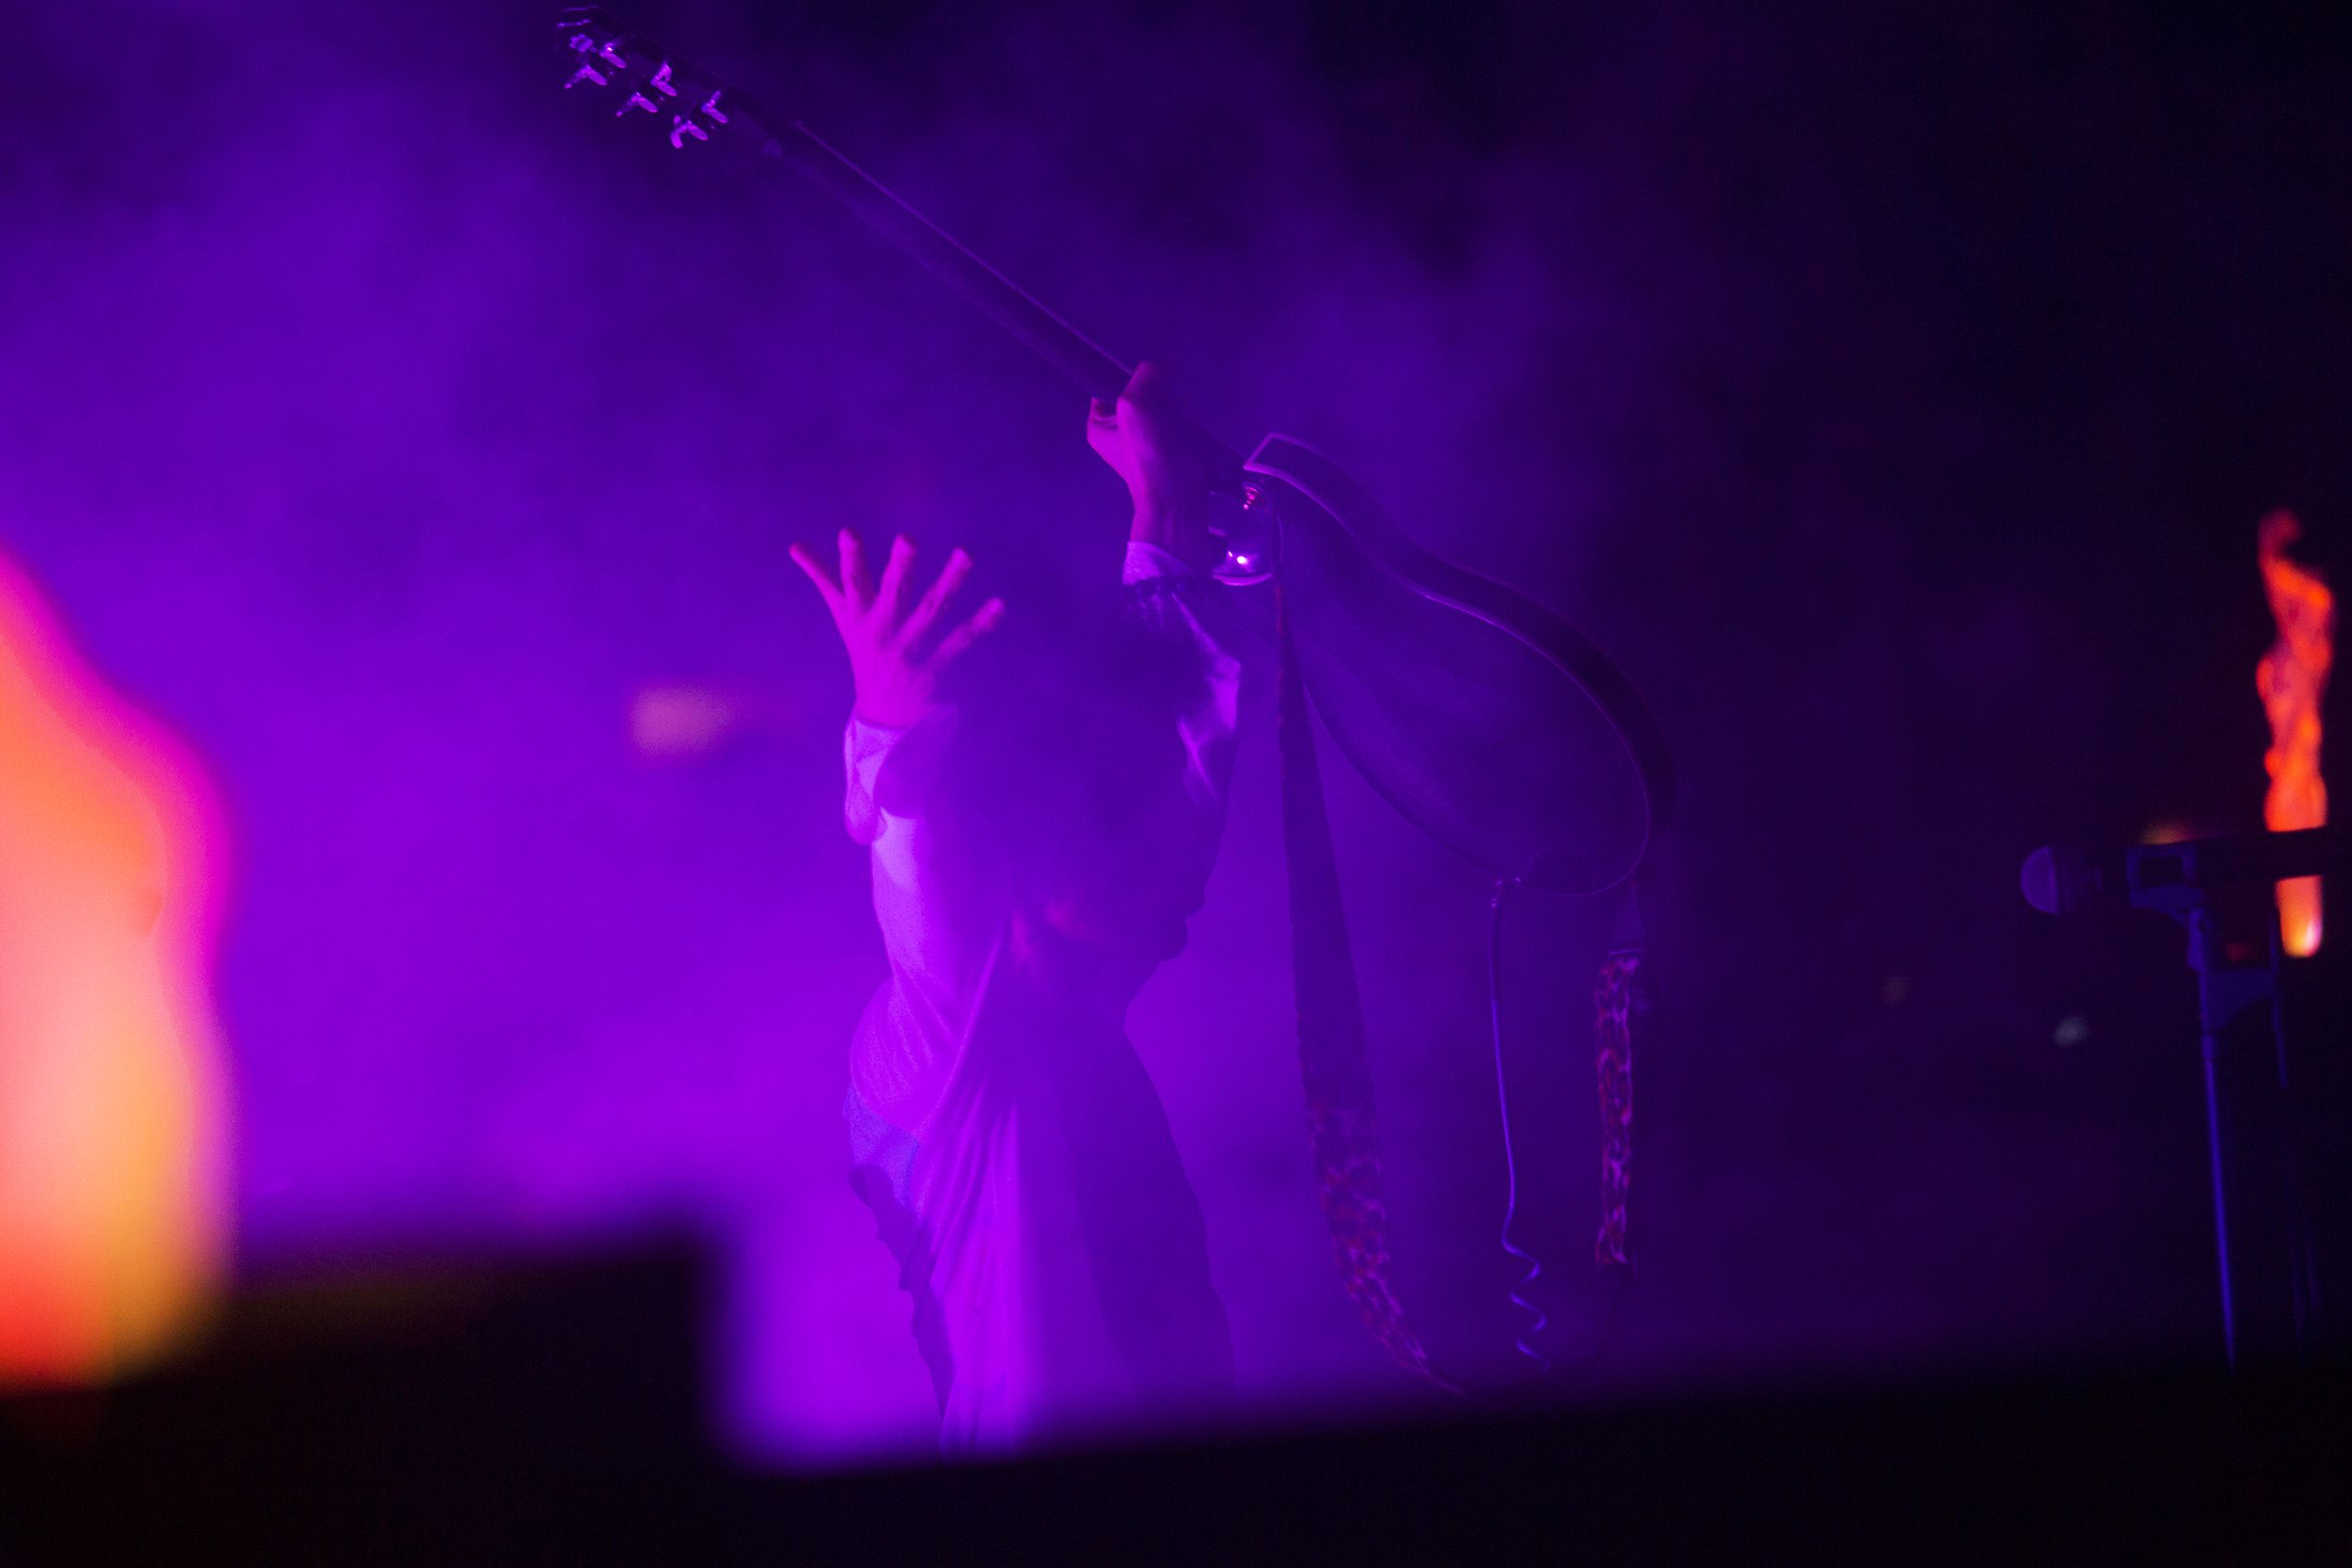 prince-in-concert-at-royal-farms-arena-in-baltimore-maryland-rally-4-peace-concert-extralarge_1431471061447.jpg (2500×1667)